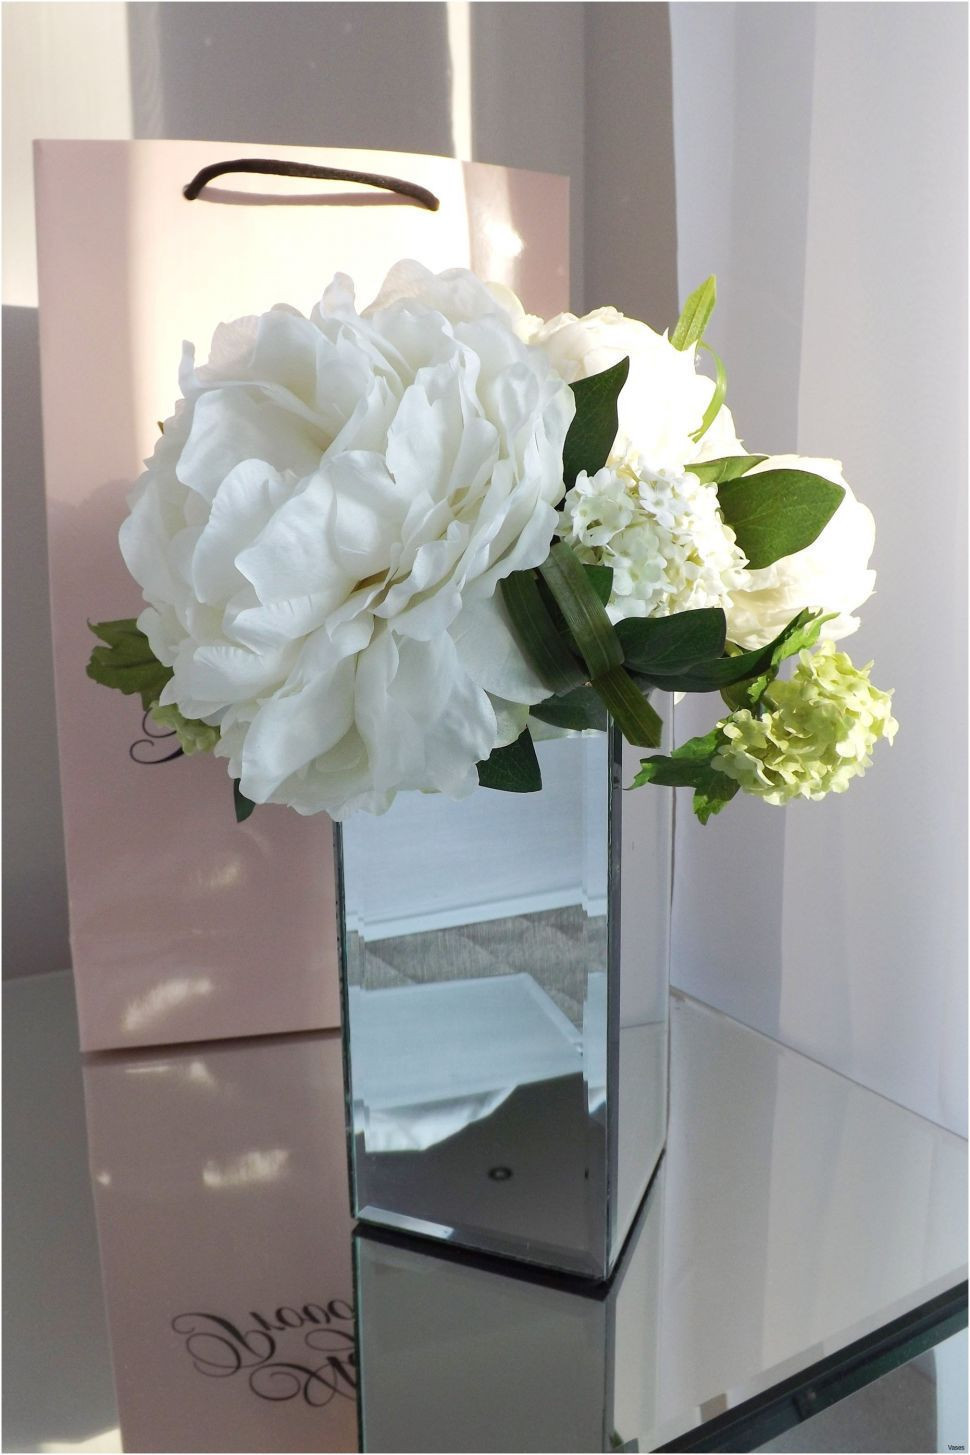 small metal flower vases of small metal vase image small flower garden ideas elegant until h within small metal vase collection download new silk arrangements for home decor of small metal vase image